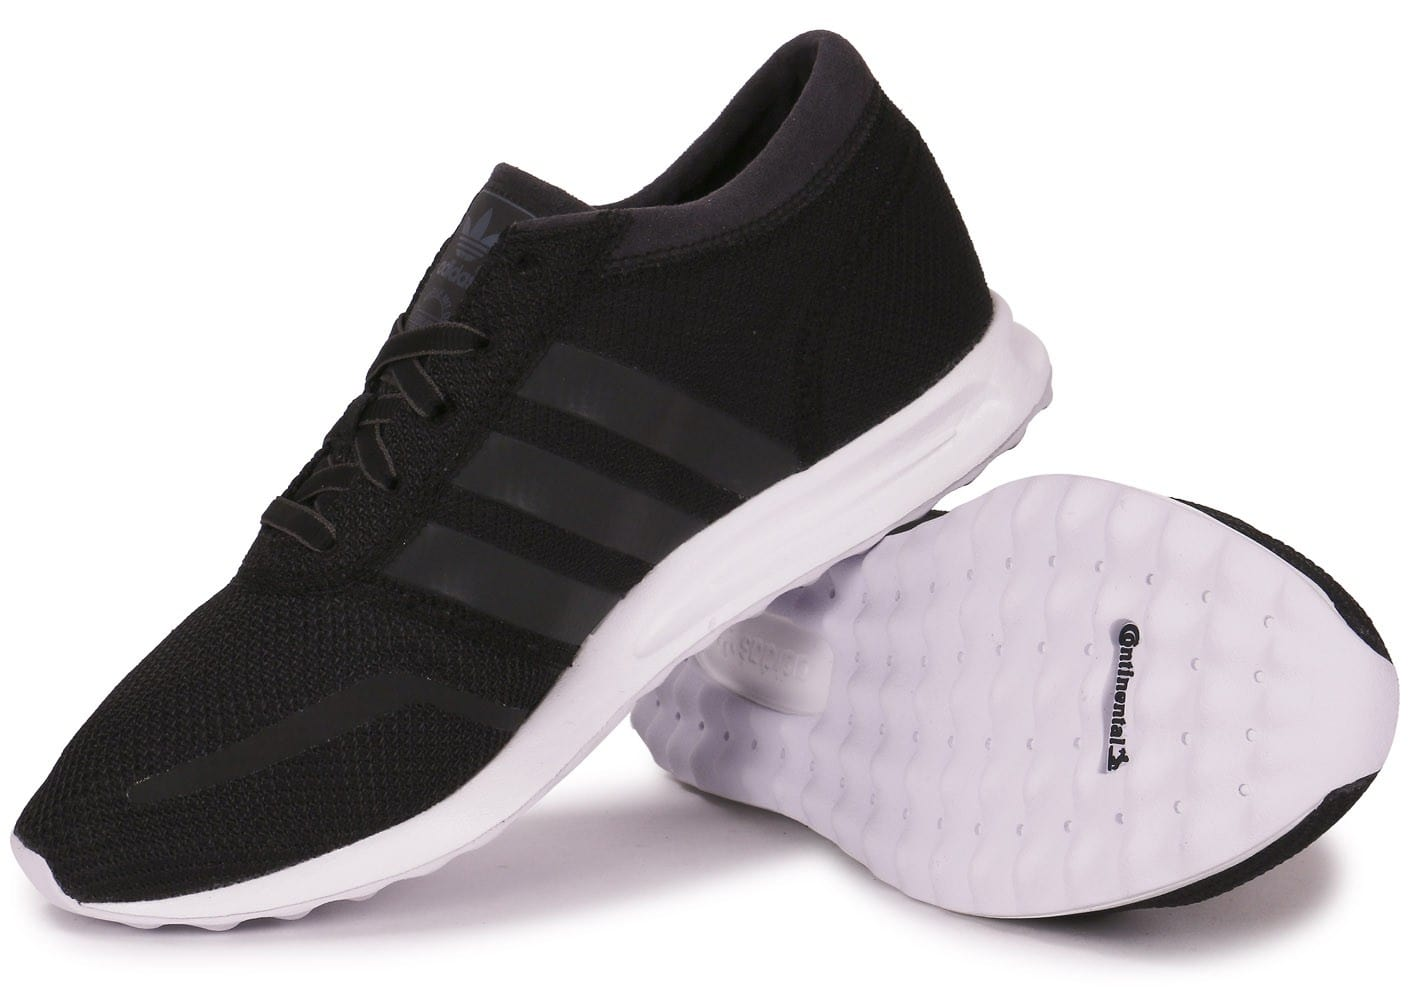 Chaussures Los Adidas Angeles Baskets Noire Homme Chausport wtnqdgqTf fd58dfe24c86